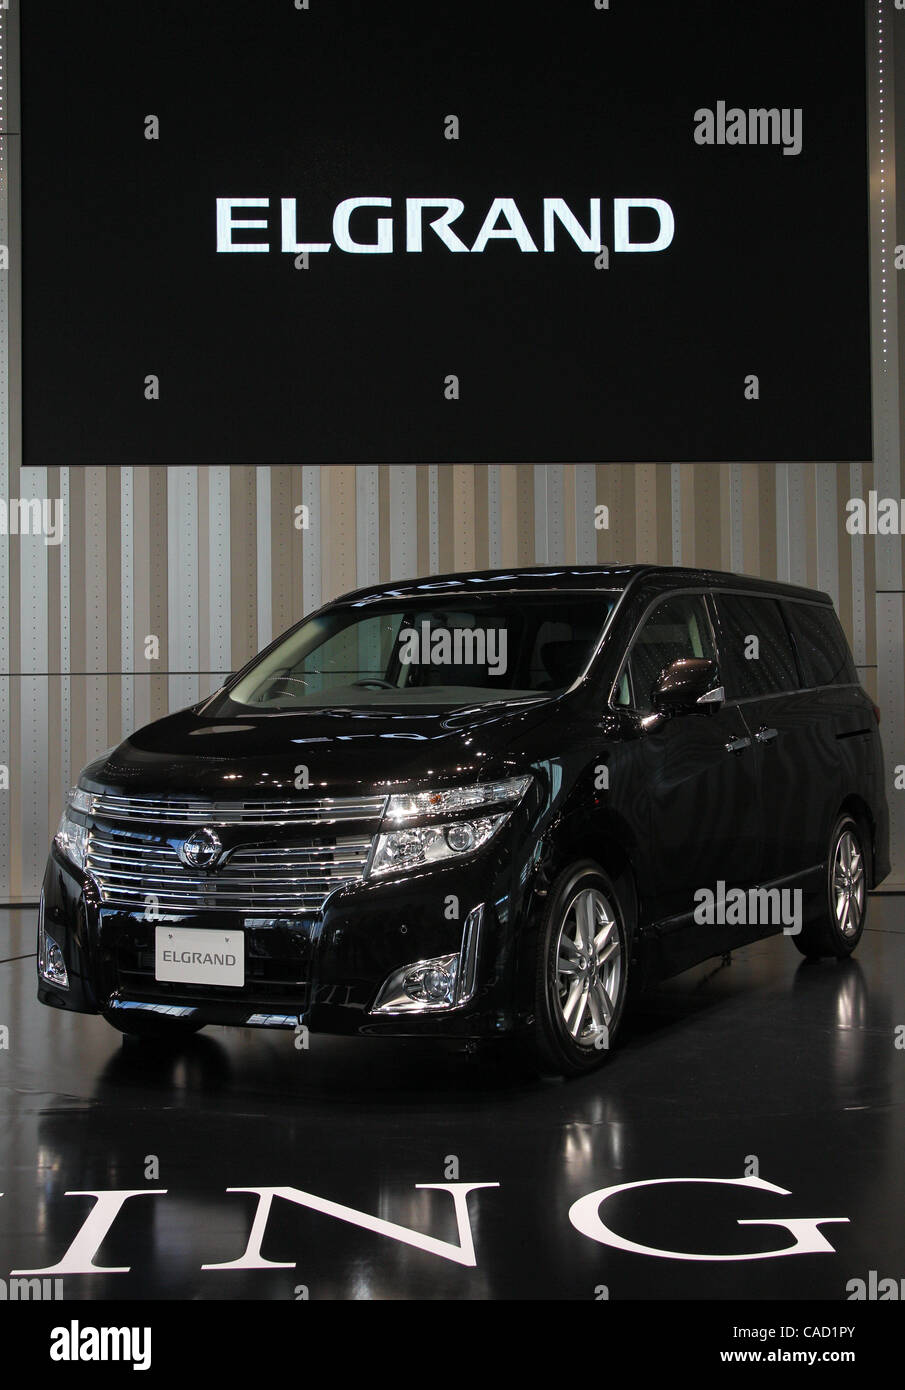 Aug   Yokohama Japan Nissan Motor Co Ltd S Elgrand Is On Display At The Corporate Headquarter In Yokohama Japan Nissan Today Announced The